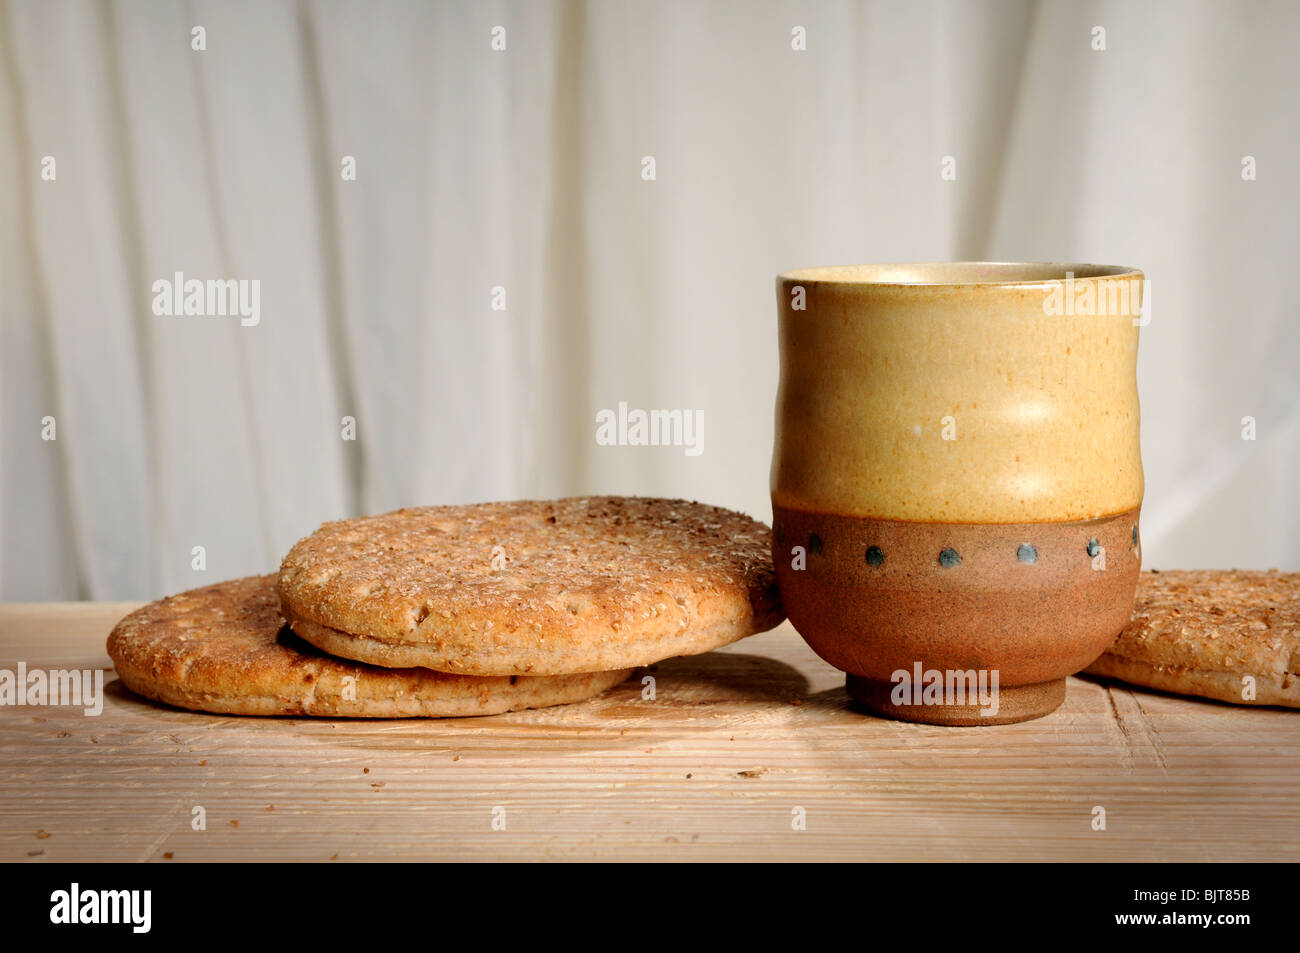 Bread and cup of wine, symbols of communion on wooden table - Stock Image